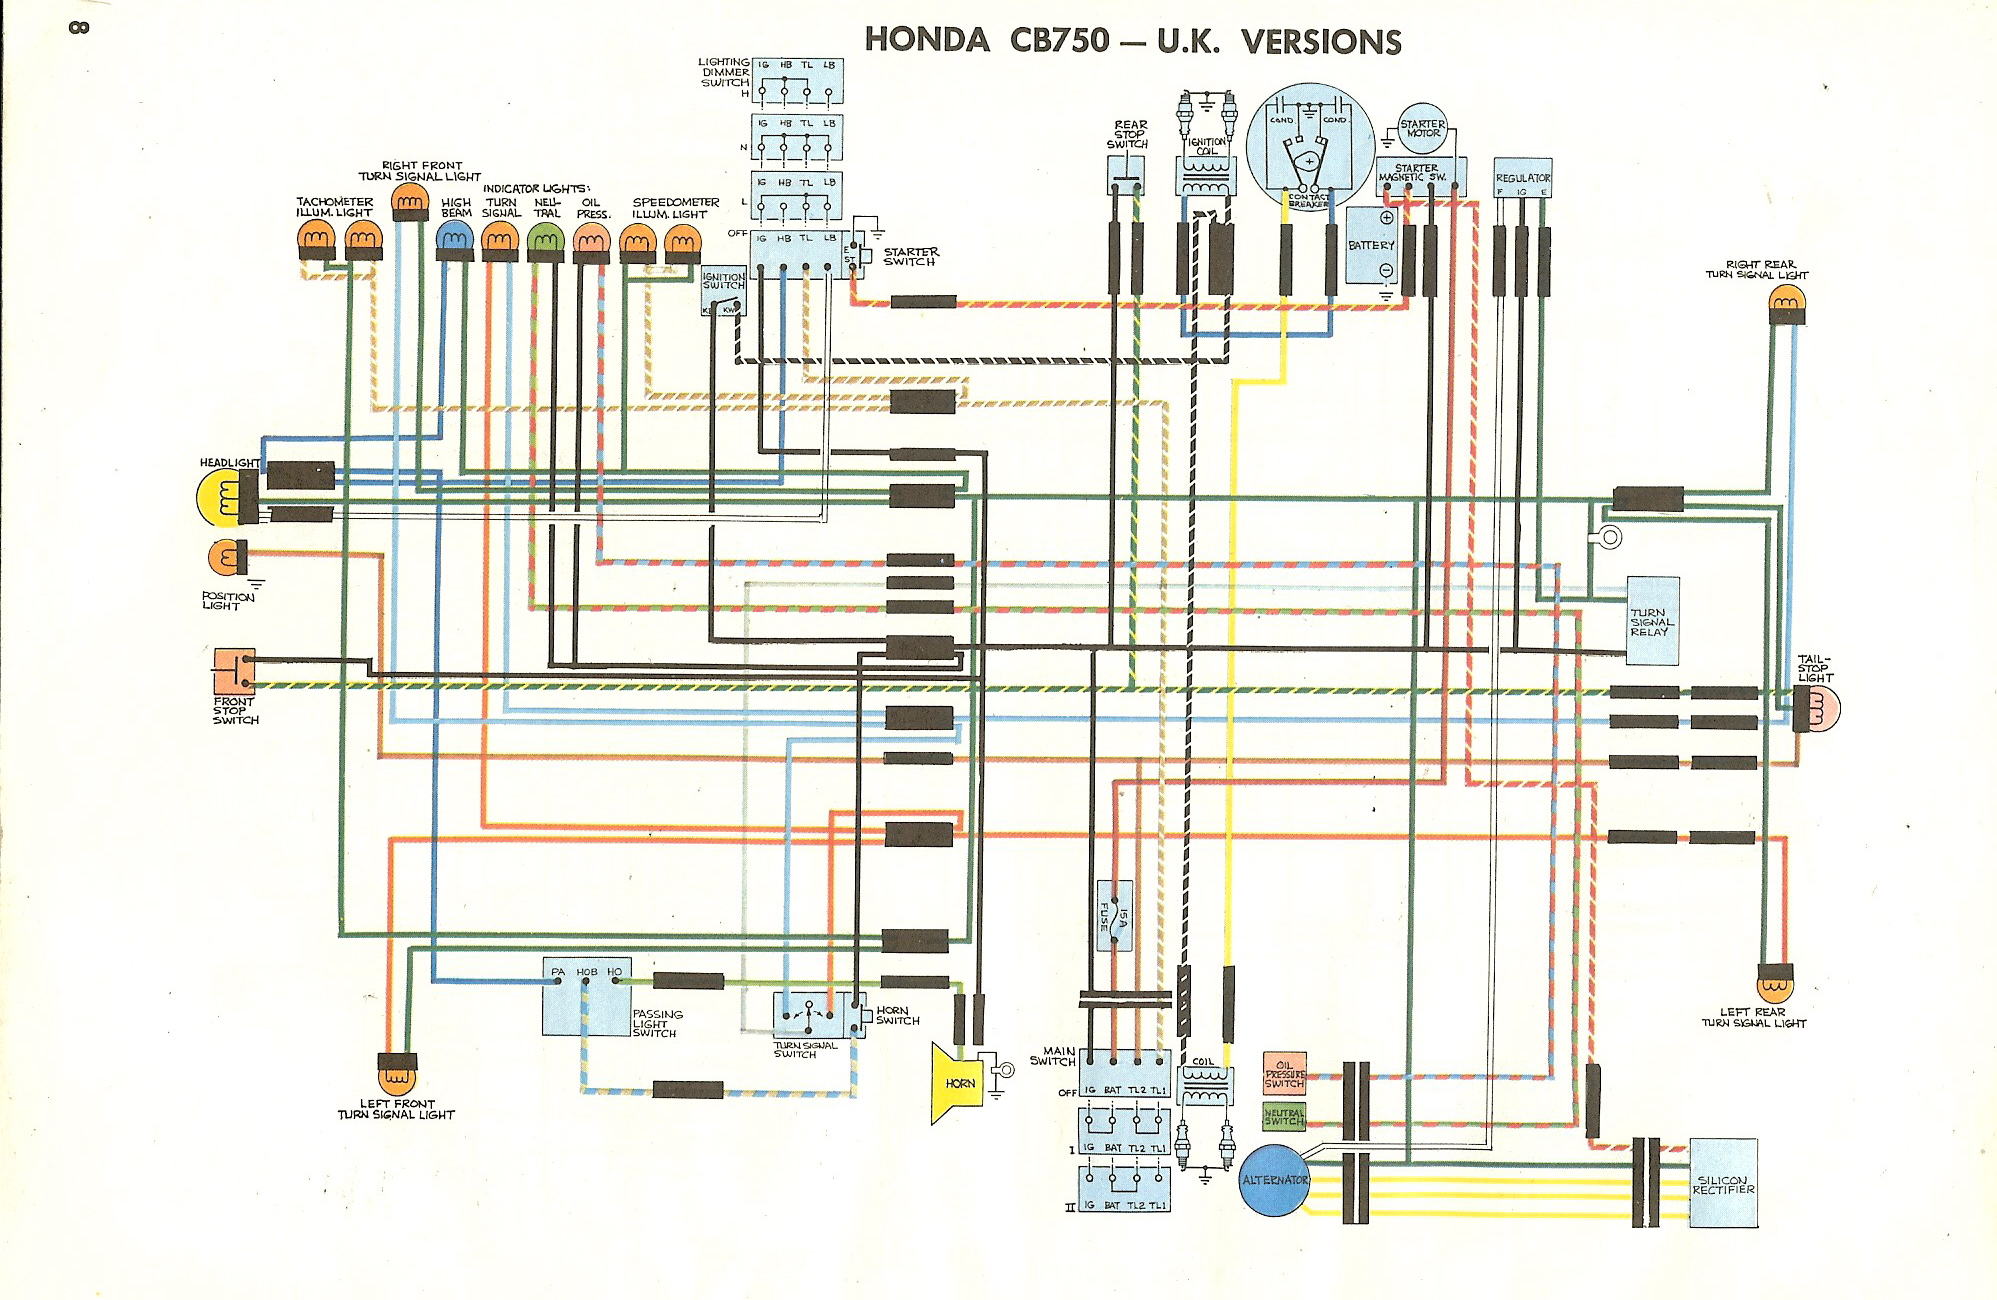 hight resolution of cb750k wiring diagram wiring diagrams cb 750 f2 wiring diagram